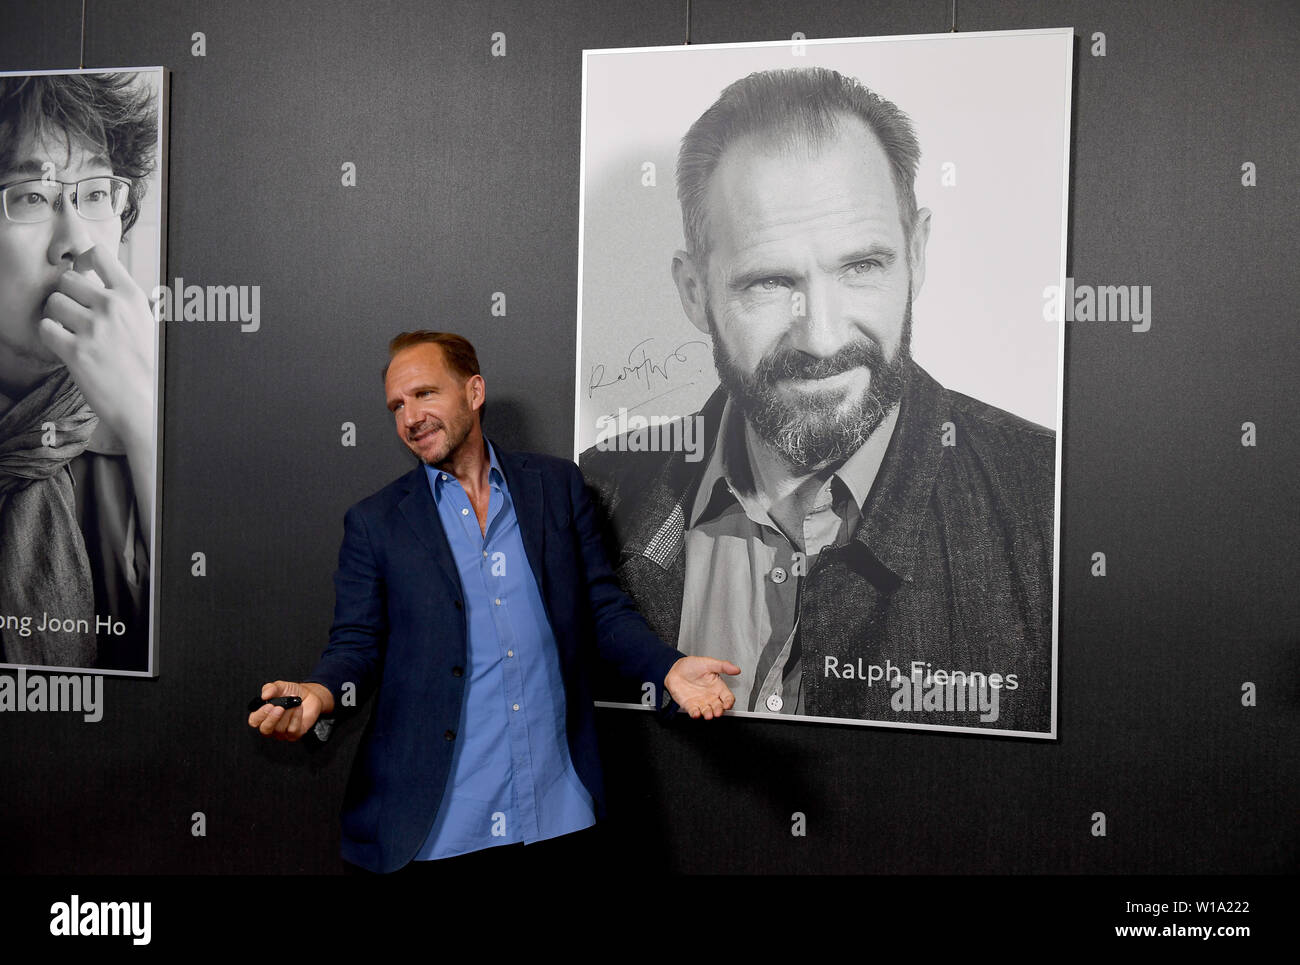 Munich, Germany  01st July, 2019  The actor Ralph Fiennes signs his